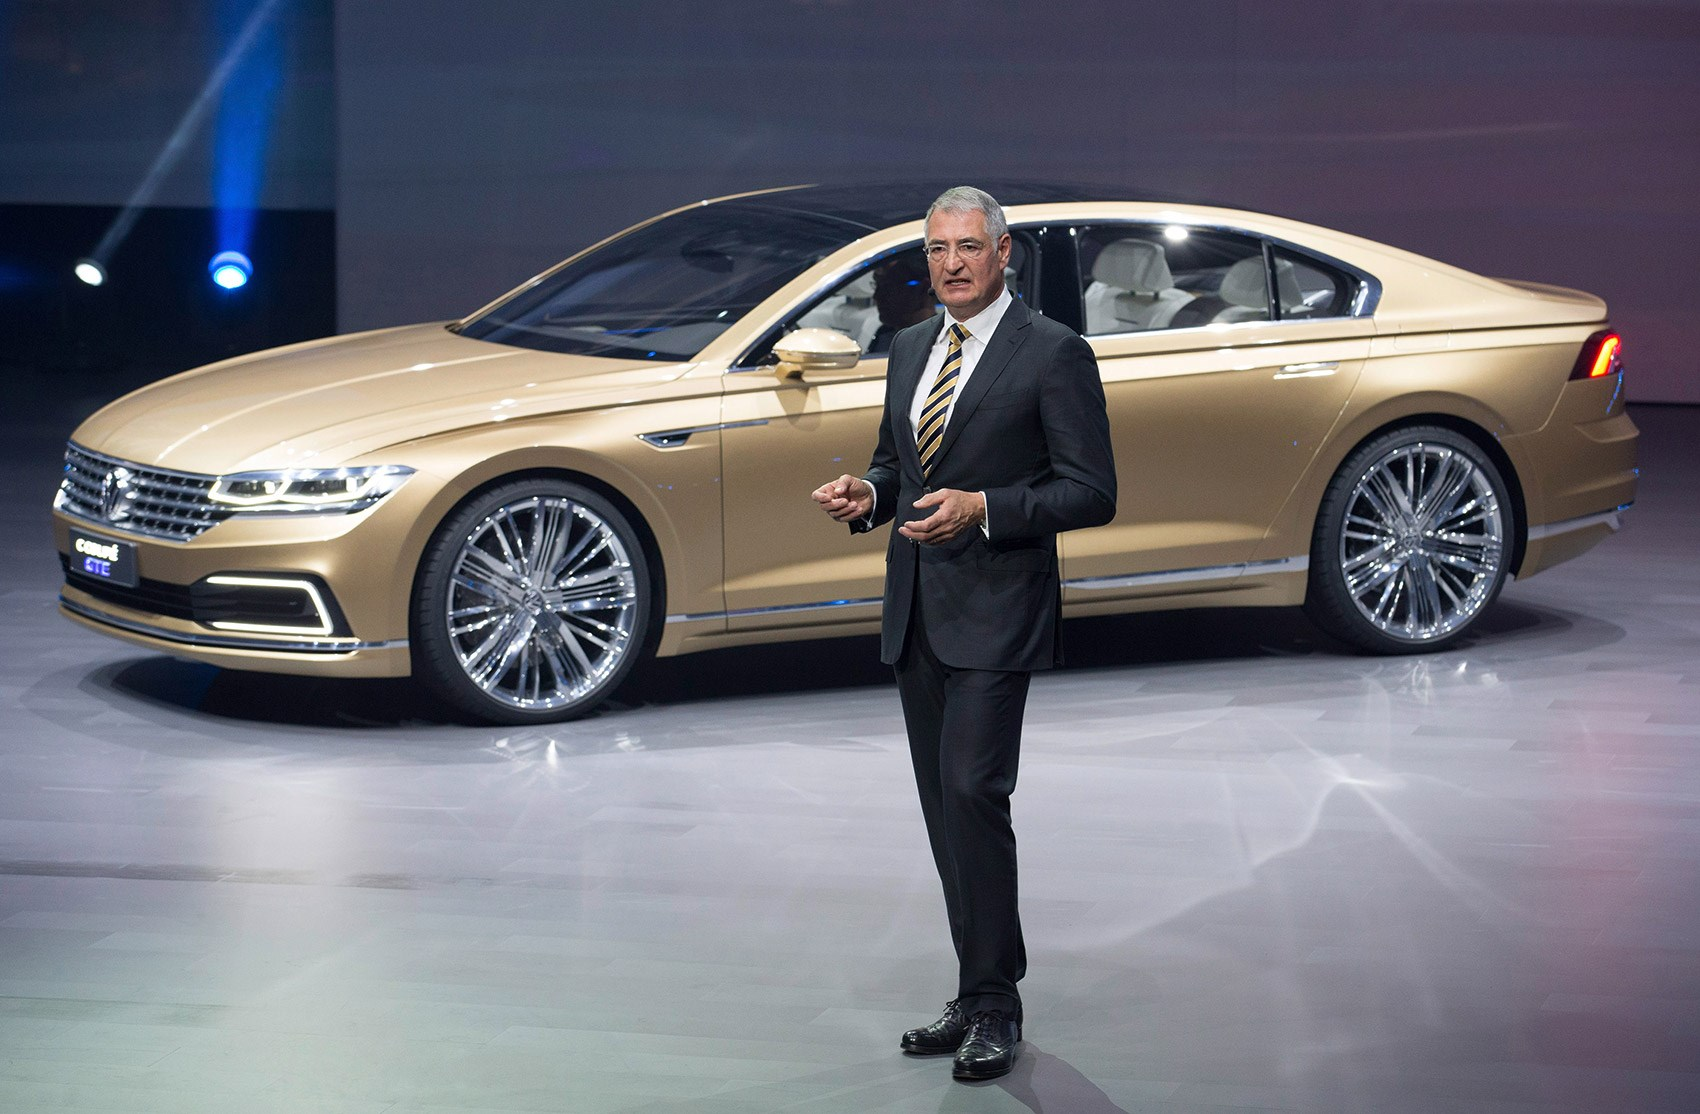 super size cc world debut for new vw c coupe gte in shanghai by car magazine. Black Bedroom Furniture Sets. Home Design Ideas